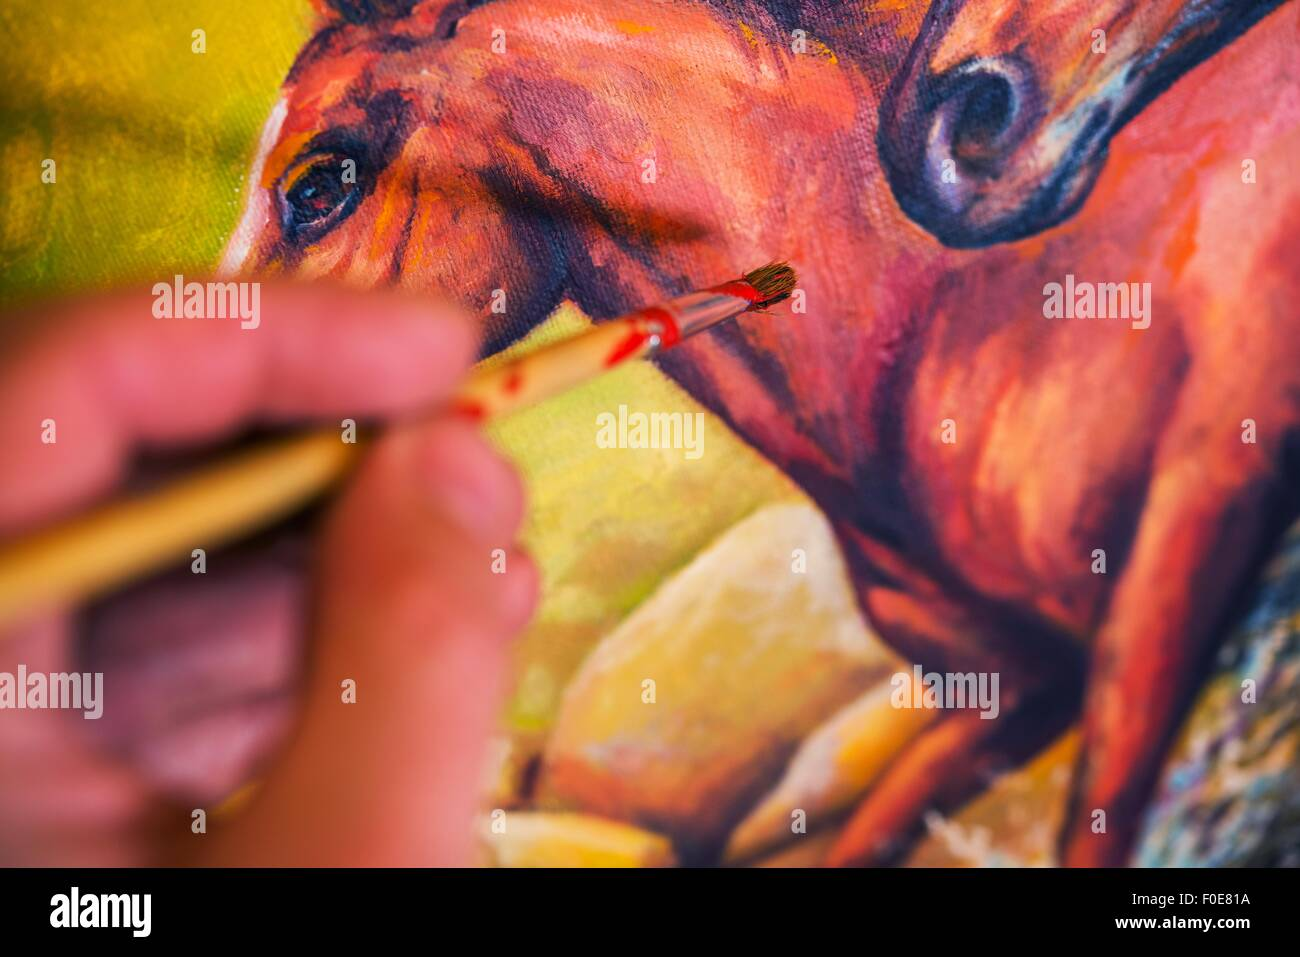 Painting on Canvas. Horses Oil Painting Closeup Photo. - Stock Image